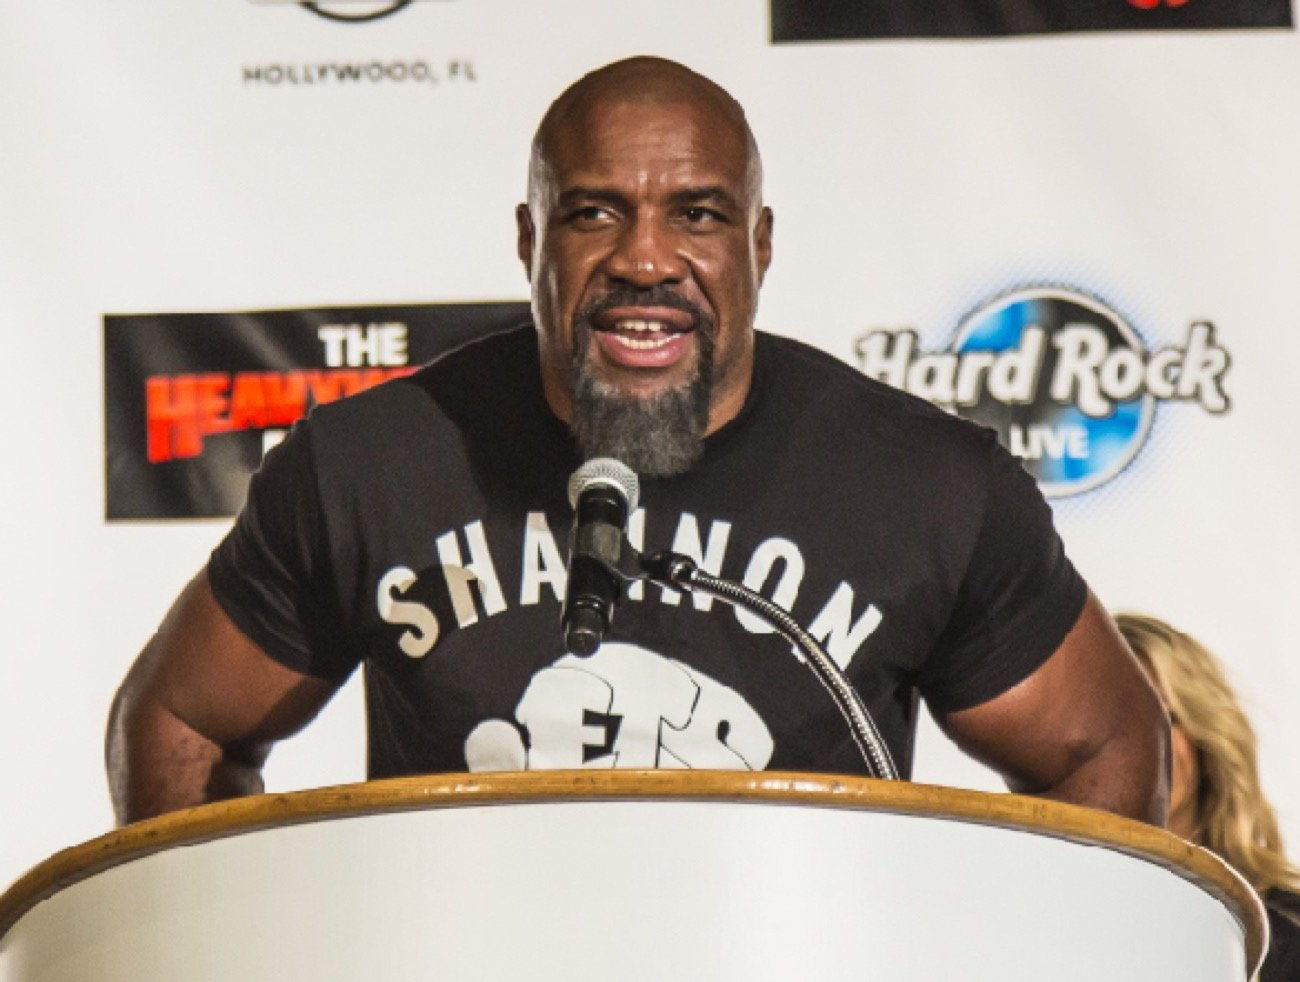 Shannon Briggs - Former lineal heavyweight champ Shannon Briggs has not fought for four years (taking out Emilio Zarate in a round on a David Haye undercard on May 21 of 2016, to improve to 60-6-1 with 53 KO's) but the 48 year old insists he is not done yet. In fact, as has been picked up by numerous boxing websites and publications, Briggs is talking, very seriously, about fighting Mike Tyson.